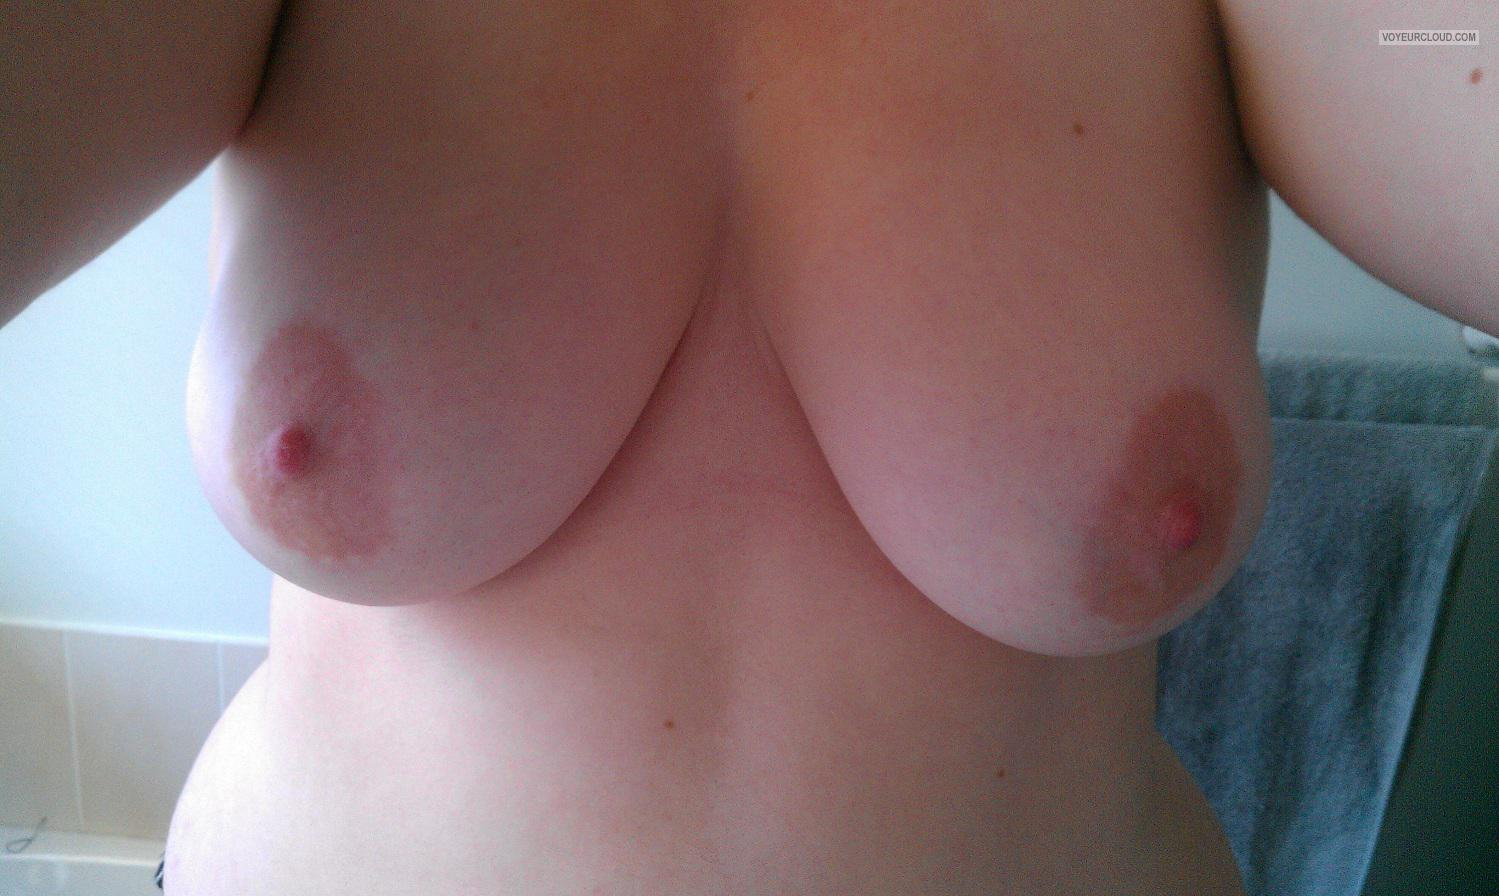 Tit Flash: My Medium Tits (Selfie) - Annaa from Australia